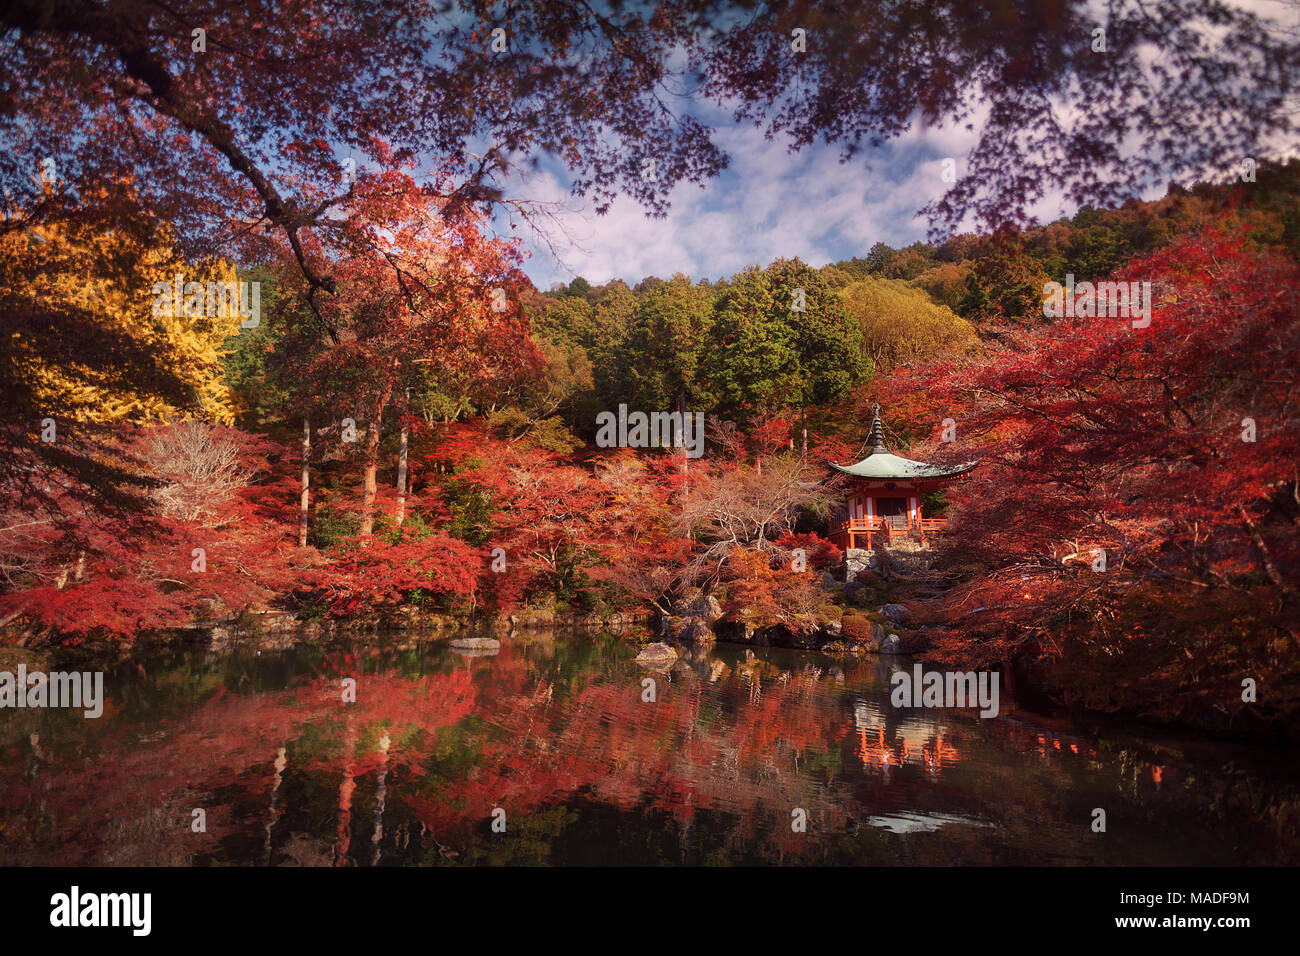 Beautiful reflective pond in front of Bentendo Hall in a colorful autumn scenery at Daigo-ji temple, Shimo-Daigo part of Daigoji complex in Fushimi-ku - Stock Image